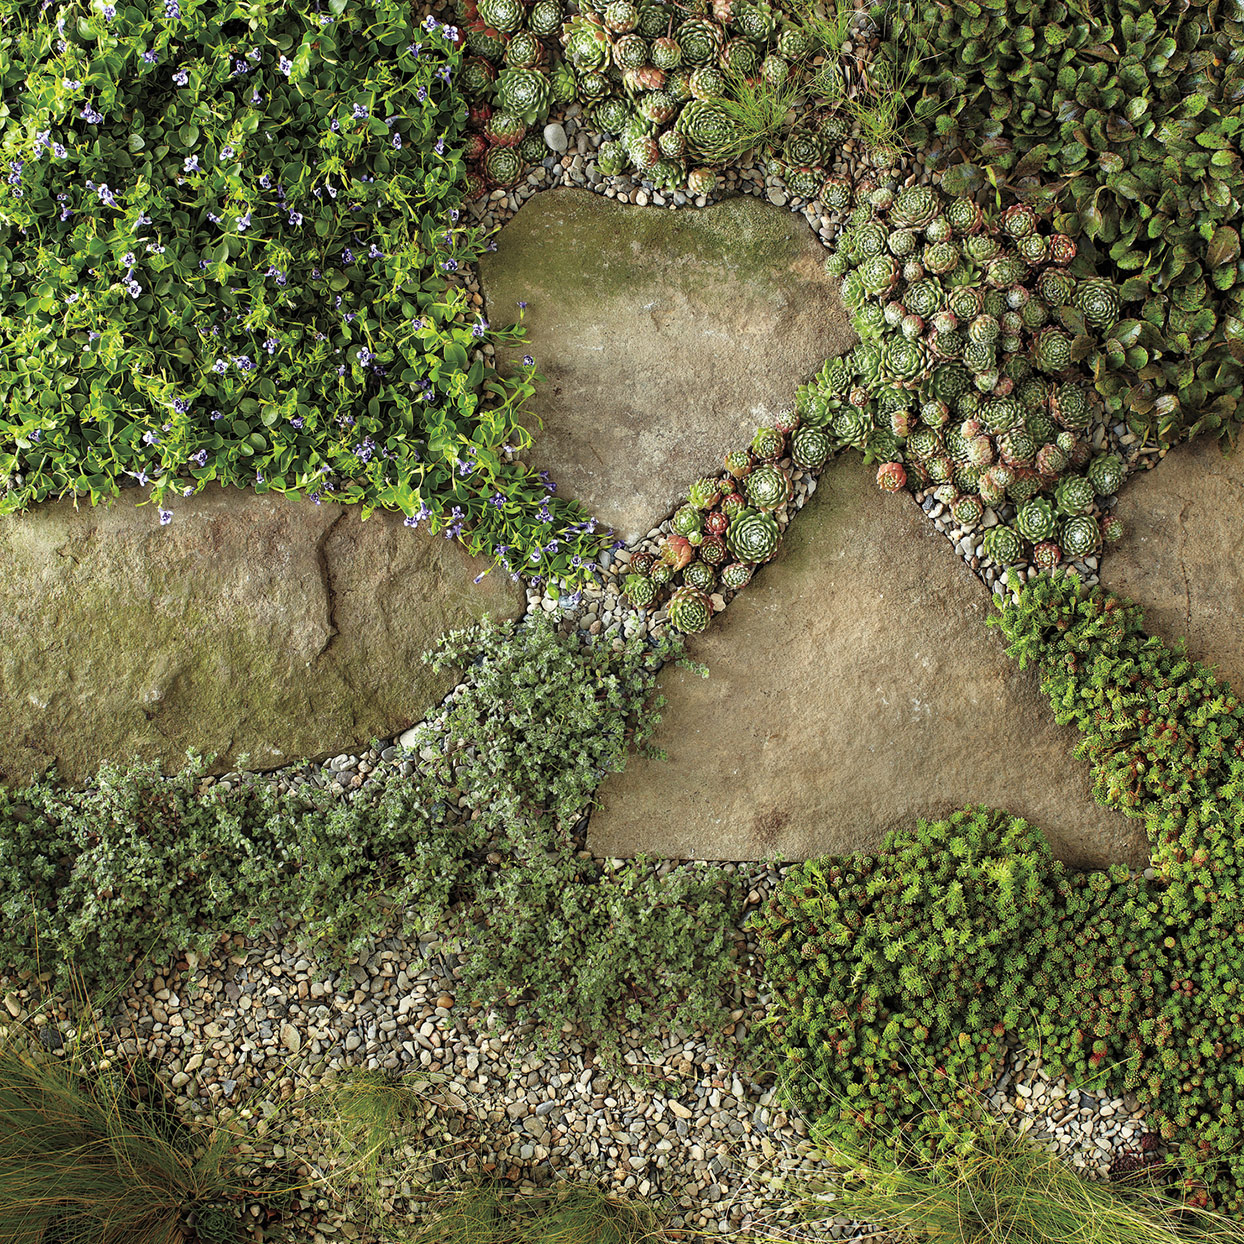 stepping stones with plants and rocks around them